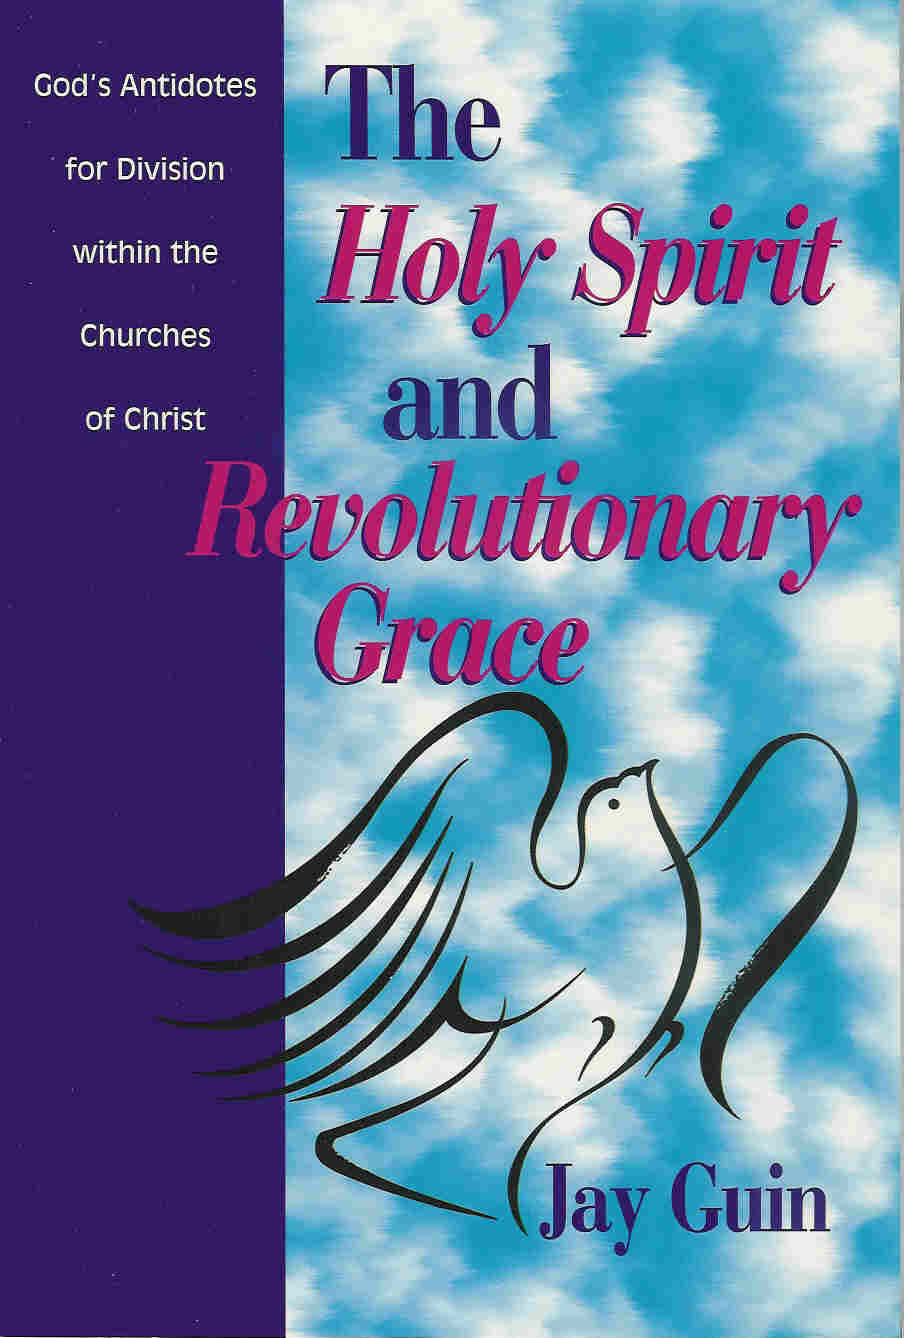 The Holy Spirit And Revolutionary Grace: God's Antidotes For Division  Within The Churches Of Christ–a Study In The Indwelling Spirit And The  Assurance Of